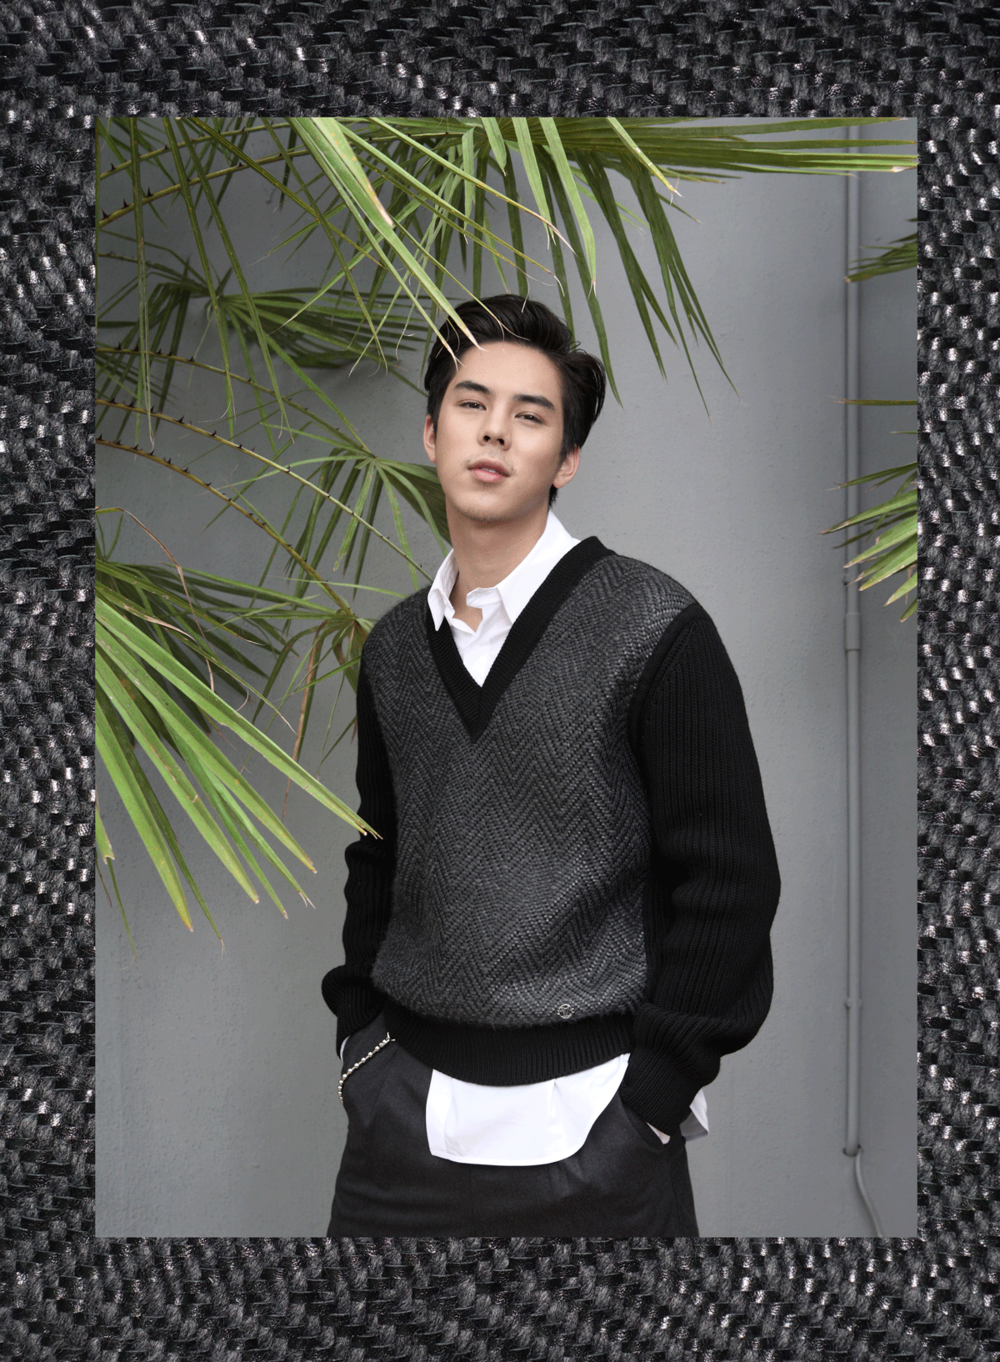 Mentor Peach Pachara / clothes : Louyis Vuitton